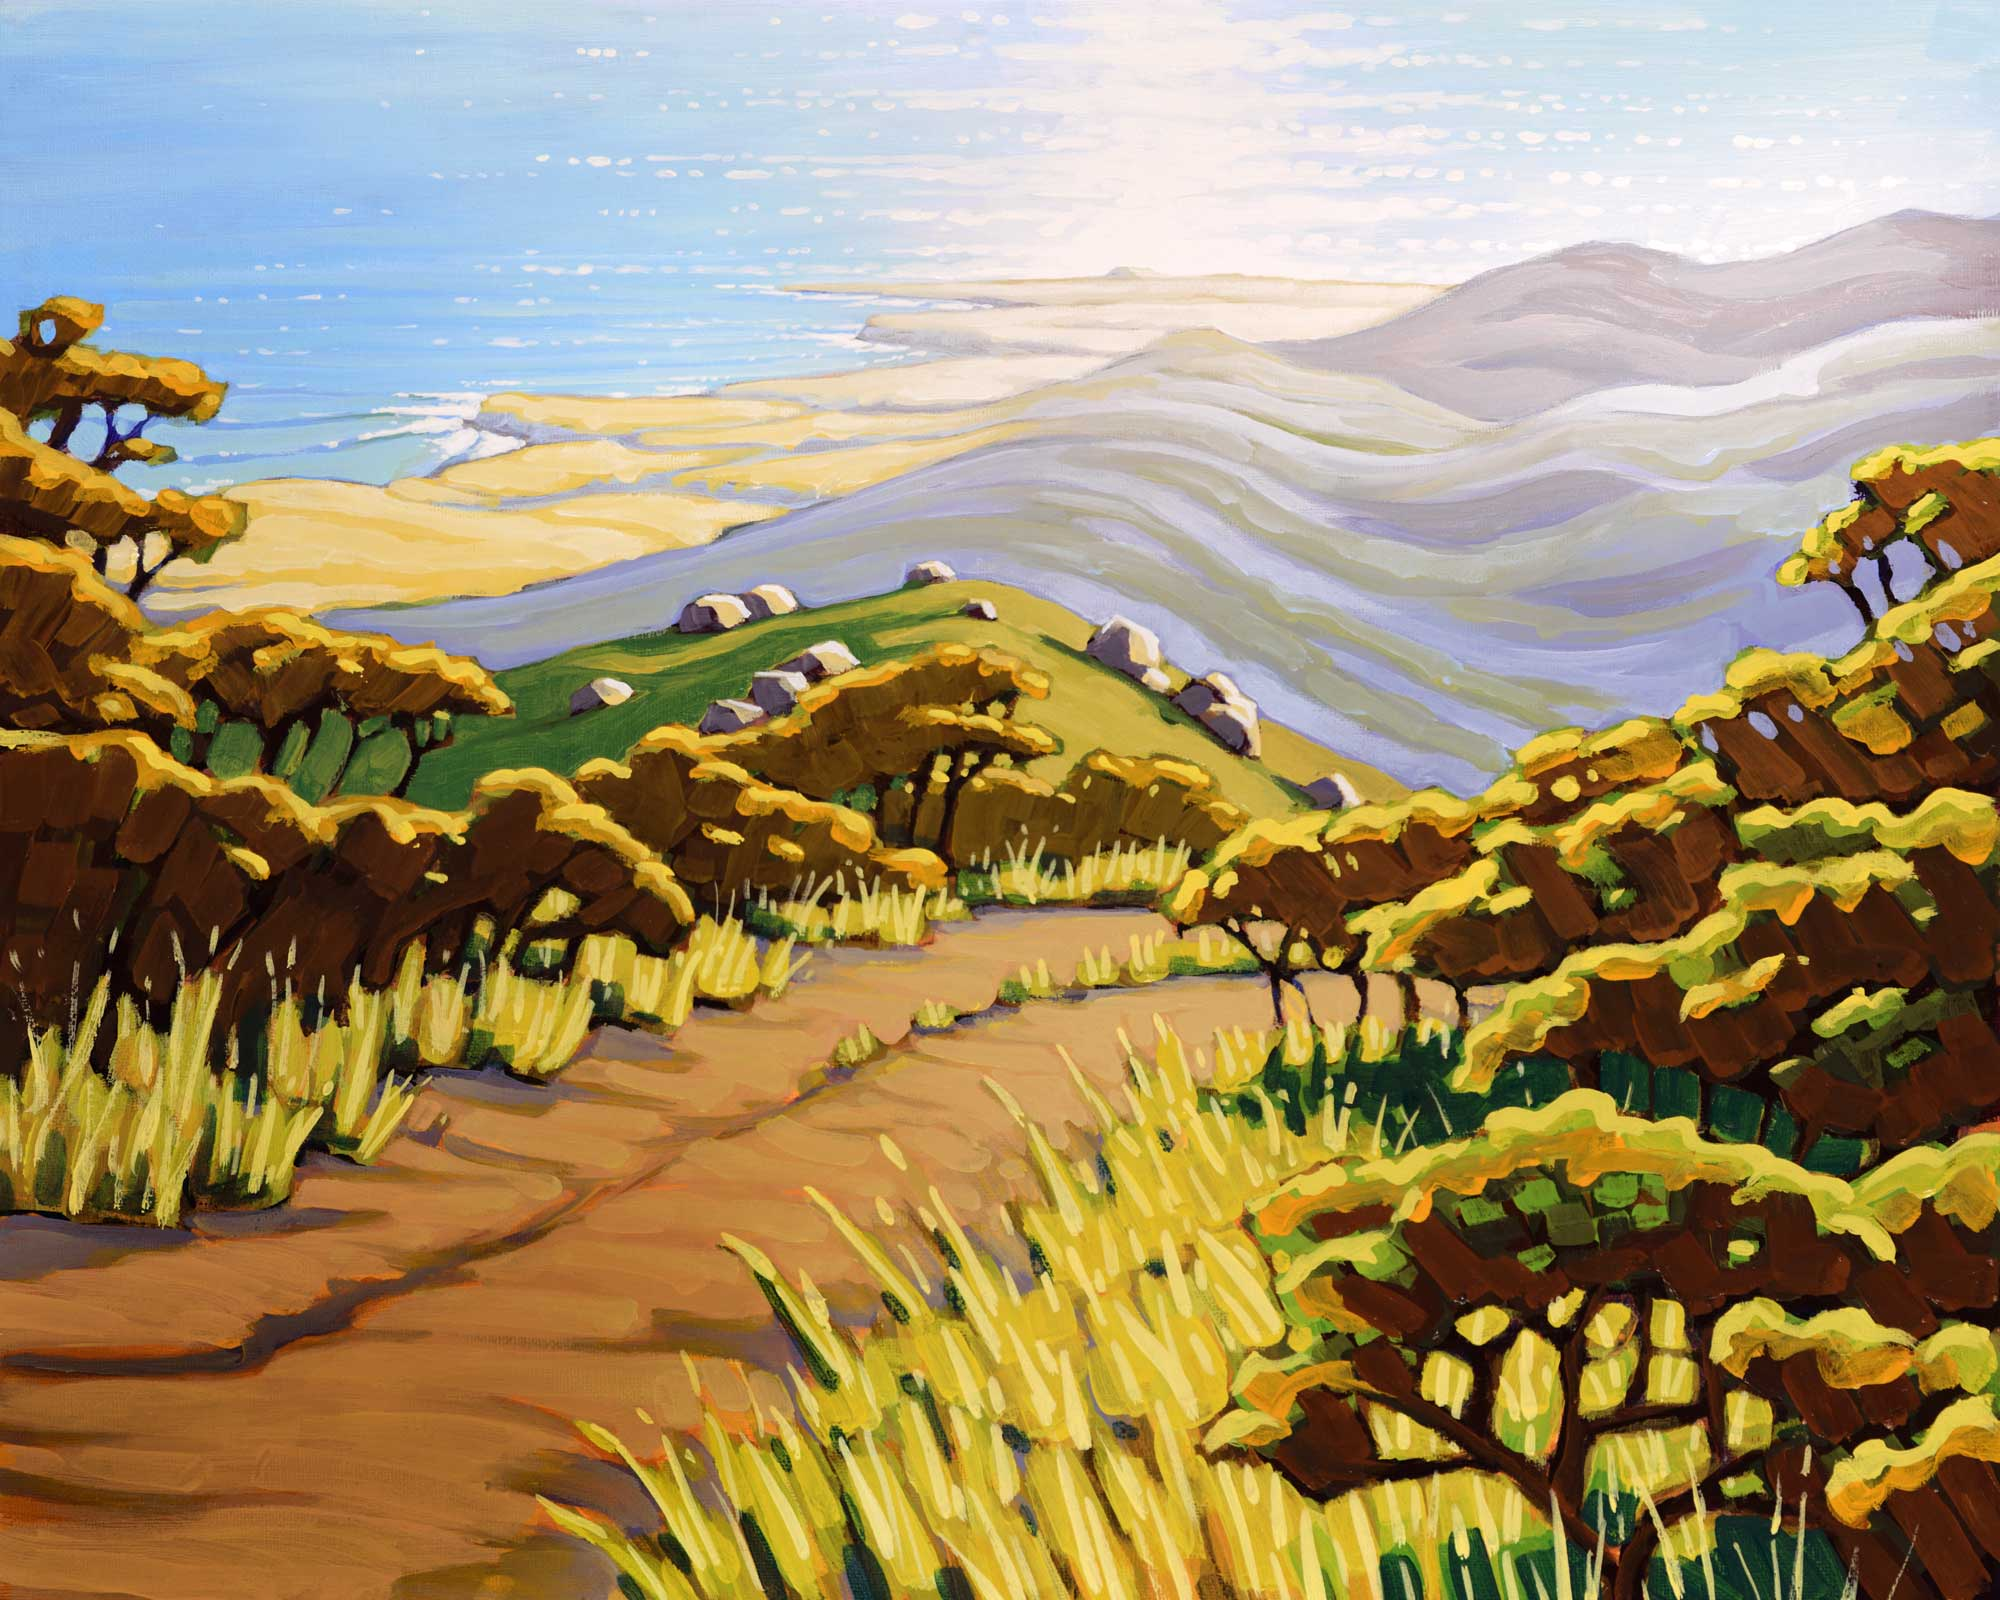 Plein air artwork from the the hollister ranch with a view of cojo point and point conception on the santa barabara coast